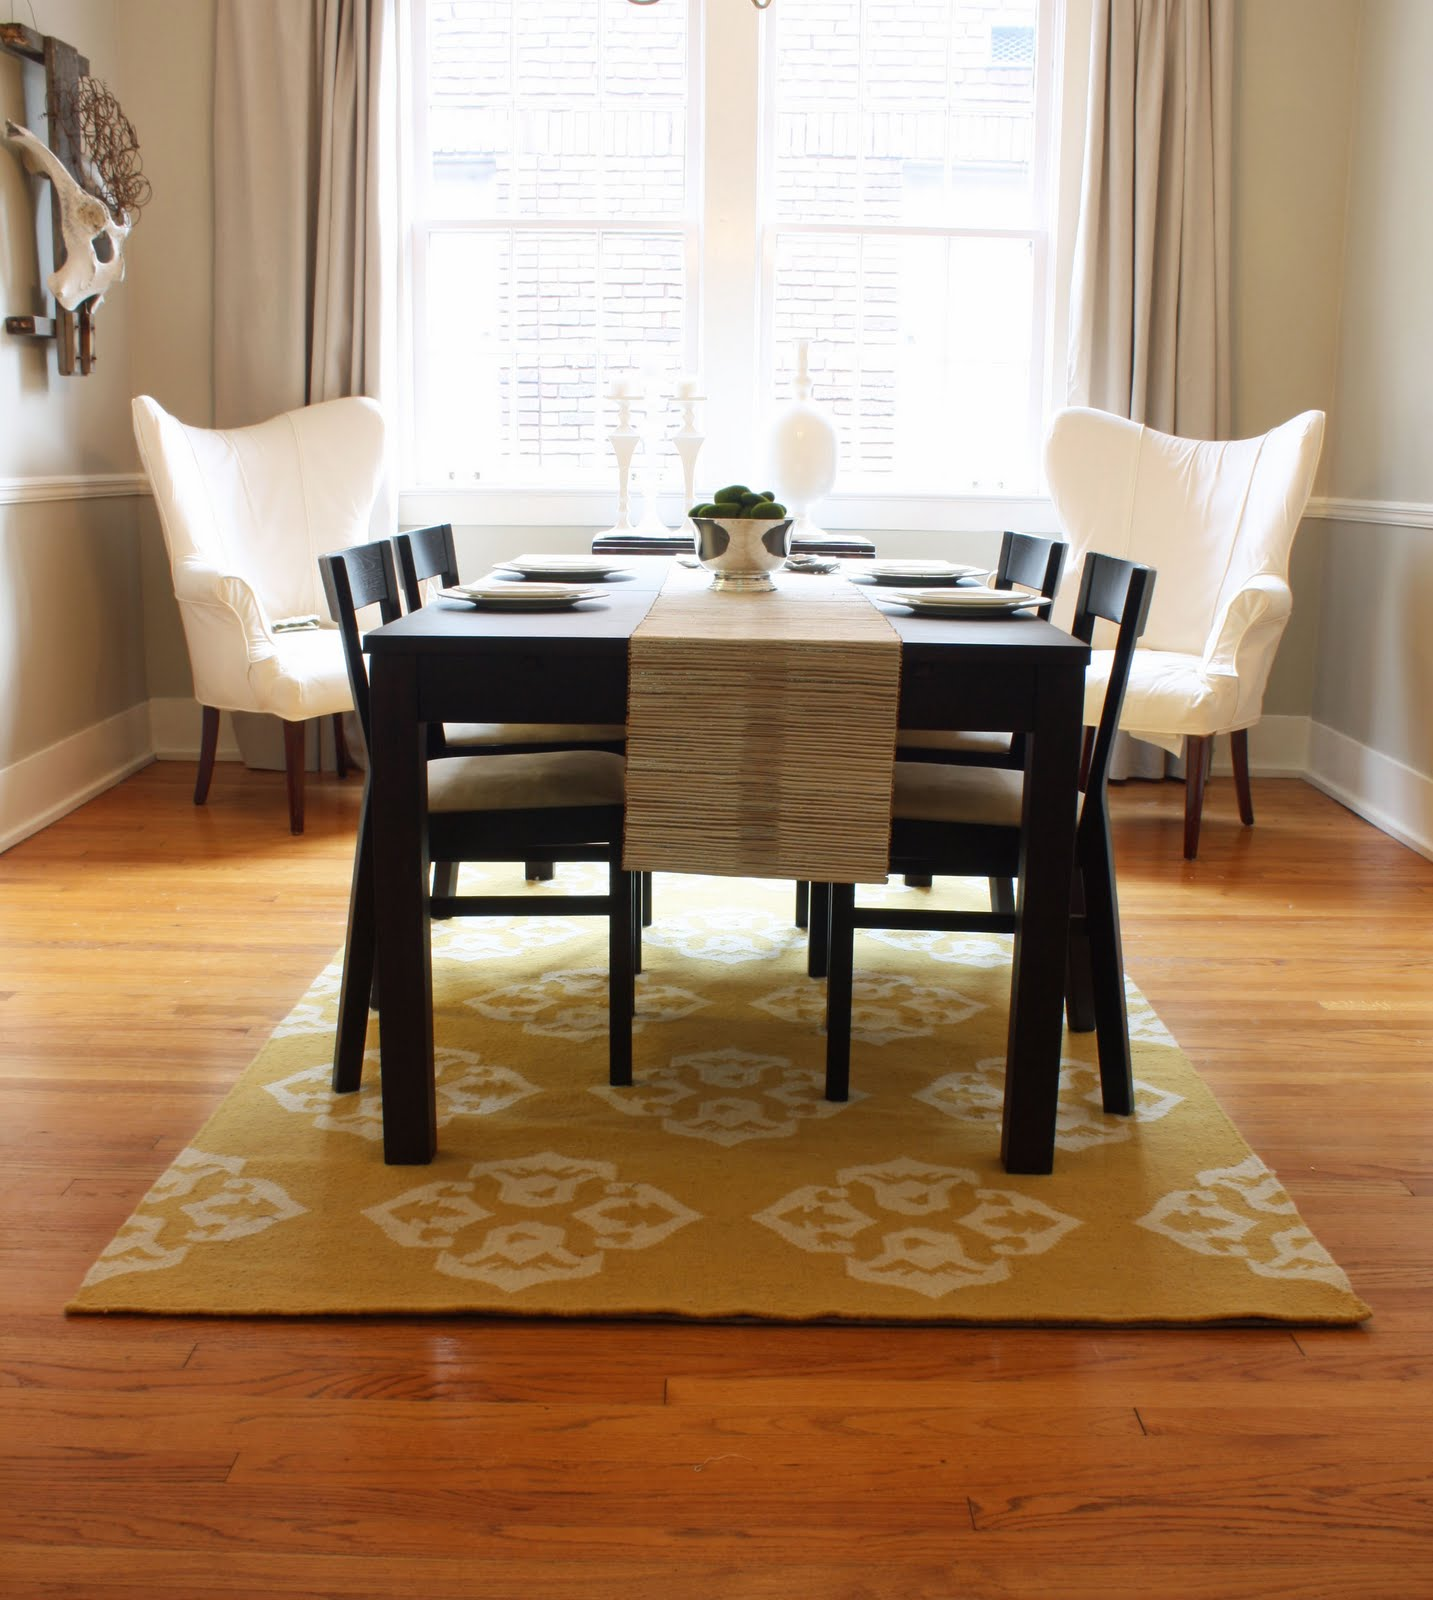 Dining Room Table With Rug